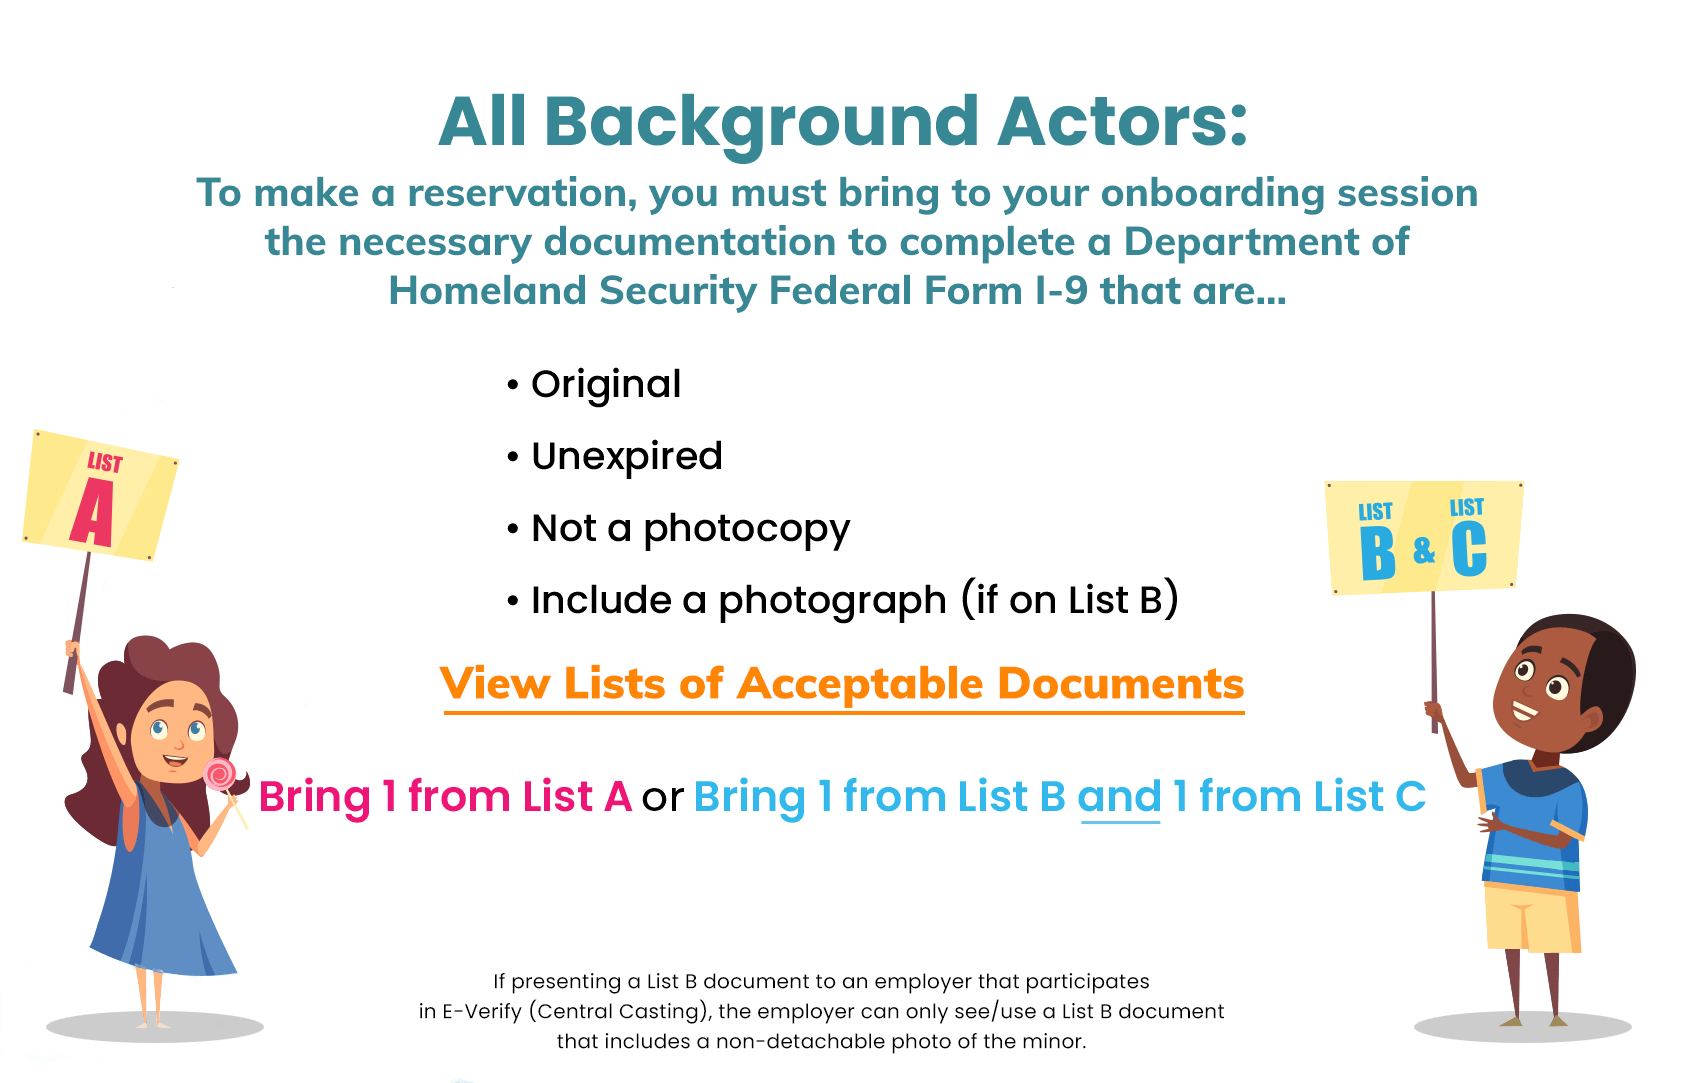 All Background Actors: To make a reservation, you must bring to your onboarding session the necessary documentation to complete a Department of Homeland Security Federal Form I-9 that are: original, unexpired, not a photocopy, and include a photograph (if on List B). Bring 1 from List A or Bring 1 from List B and 1 from List C. Follow this link to read a list of acceptable documents. If presenting a List B document to an employer that participates in E-Verify (Central Casting), the employer can only see/use a List B document that includes a non-detachable photo of the minor.